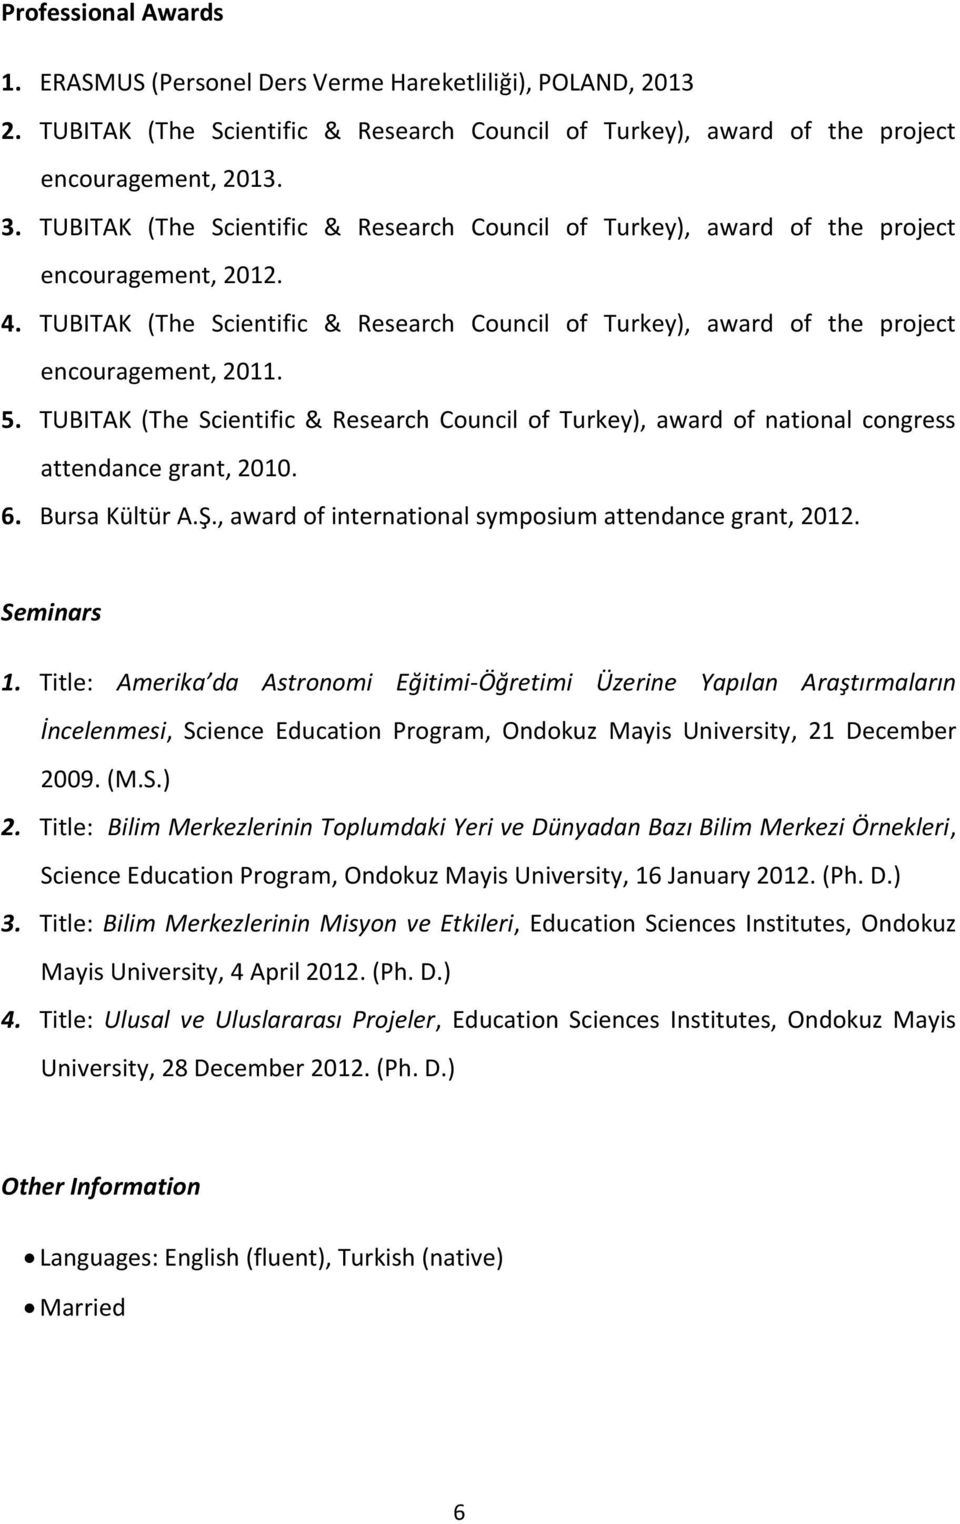 TUBITAK (The Scientific & Research Council of Turkey), award of national congress attendance grant, 2010. 6. Bursa Kültür A.Ş., award of international symposium attendance grant, 2012. Seminars 1.